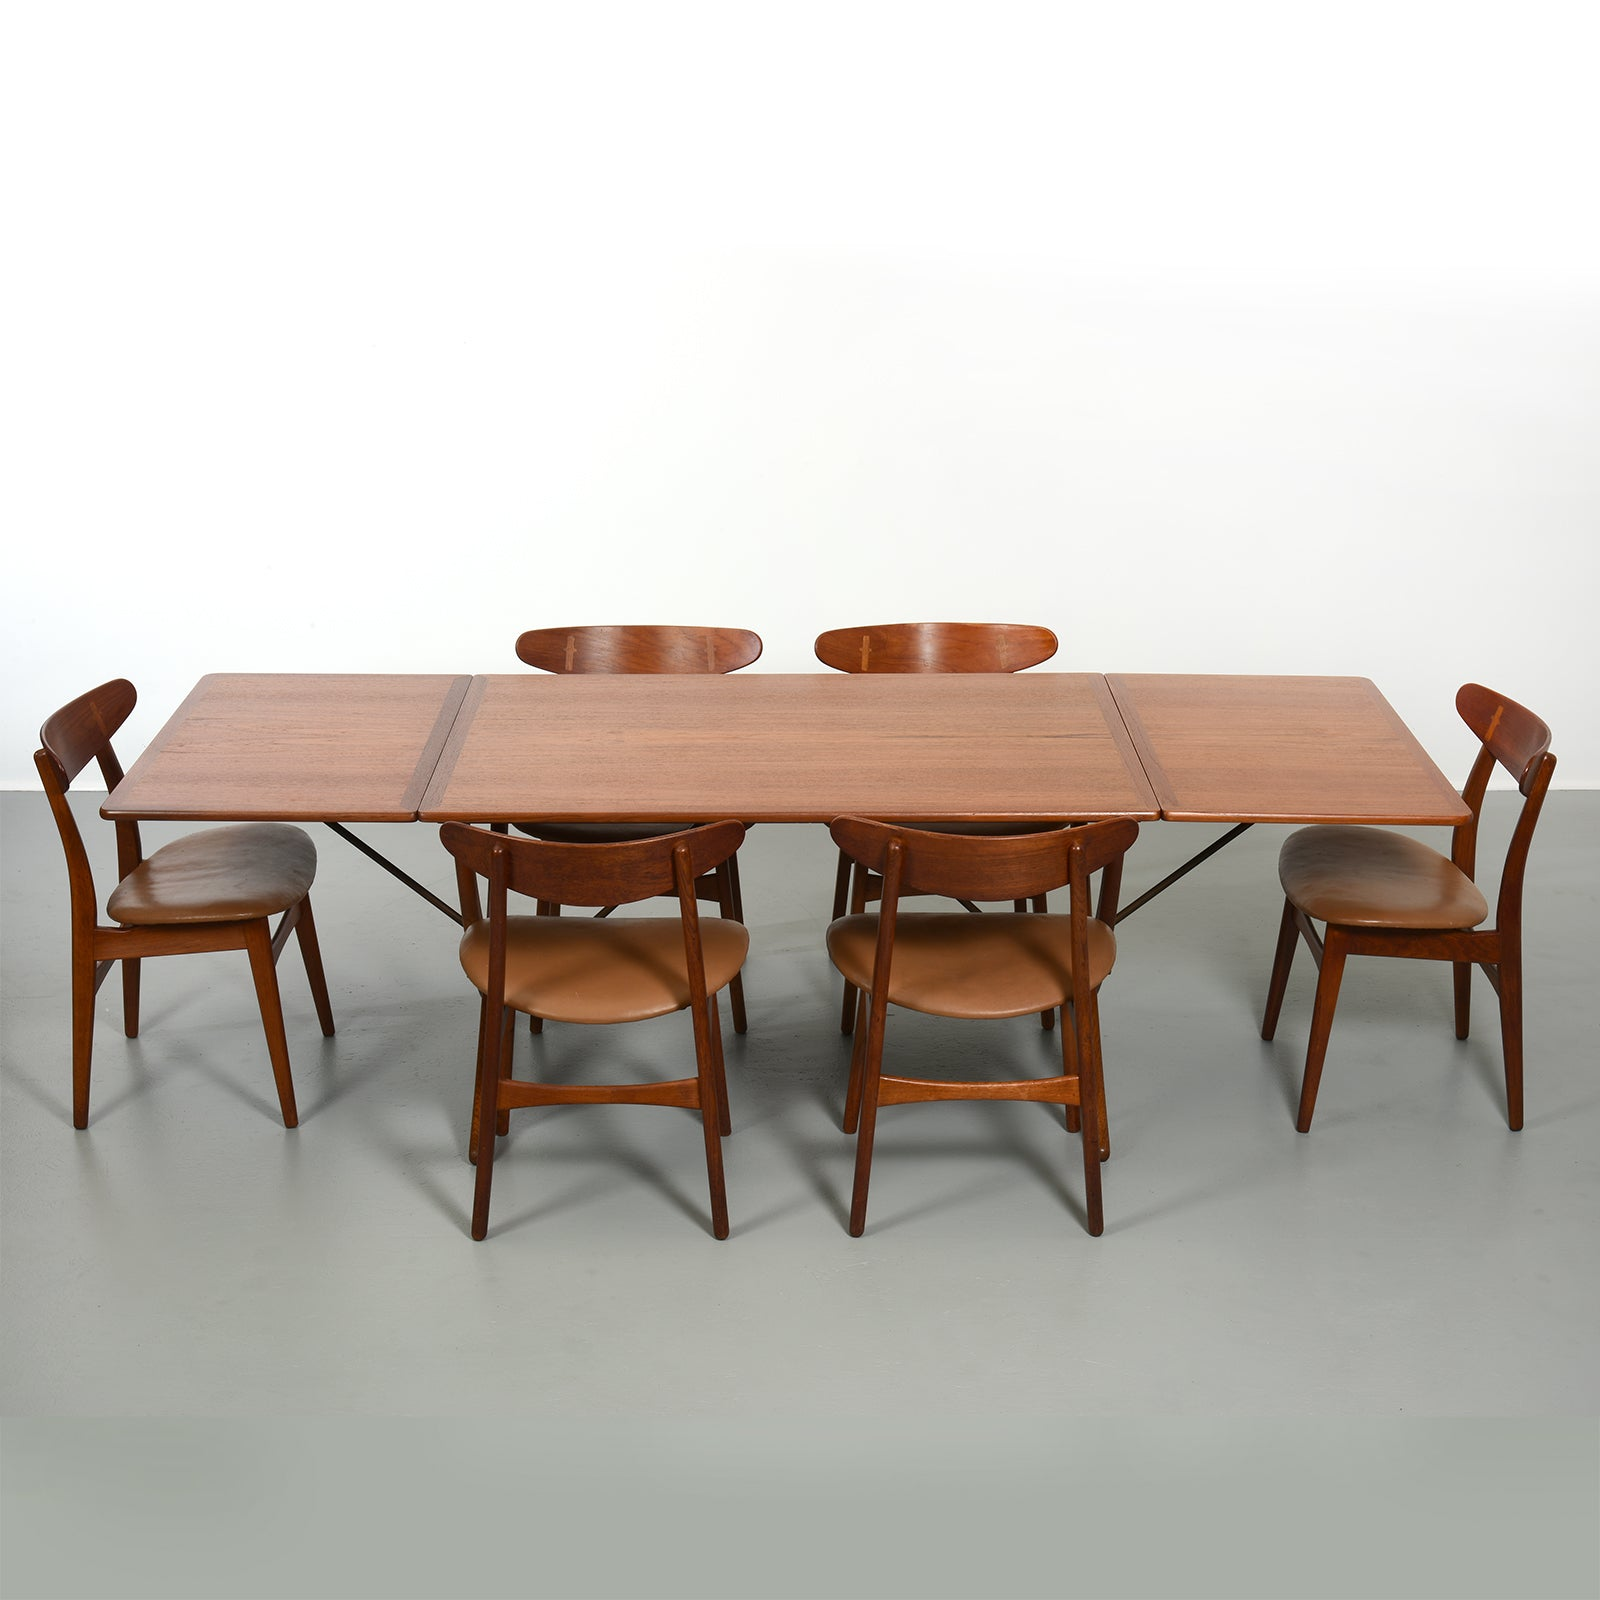 Hans Wegner Dining Set, Model AT-304 Dining Table and Model CH-30 Dining Chairs